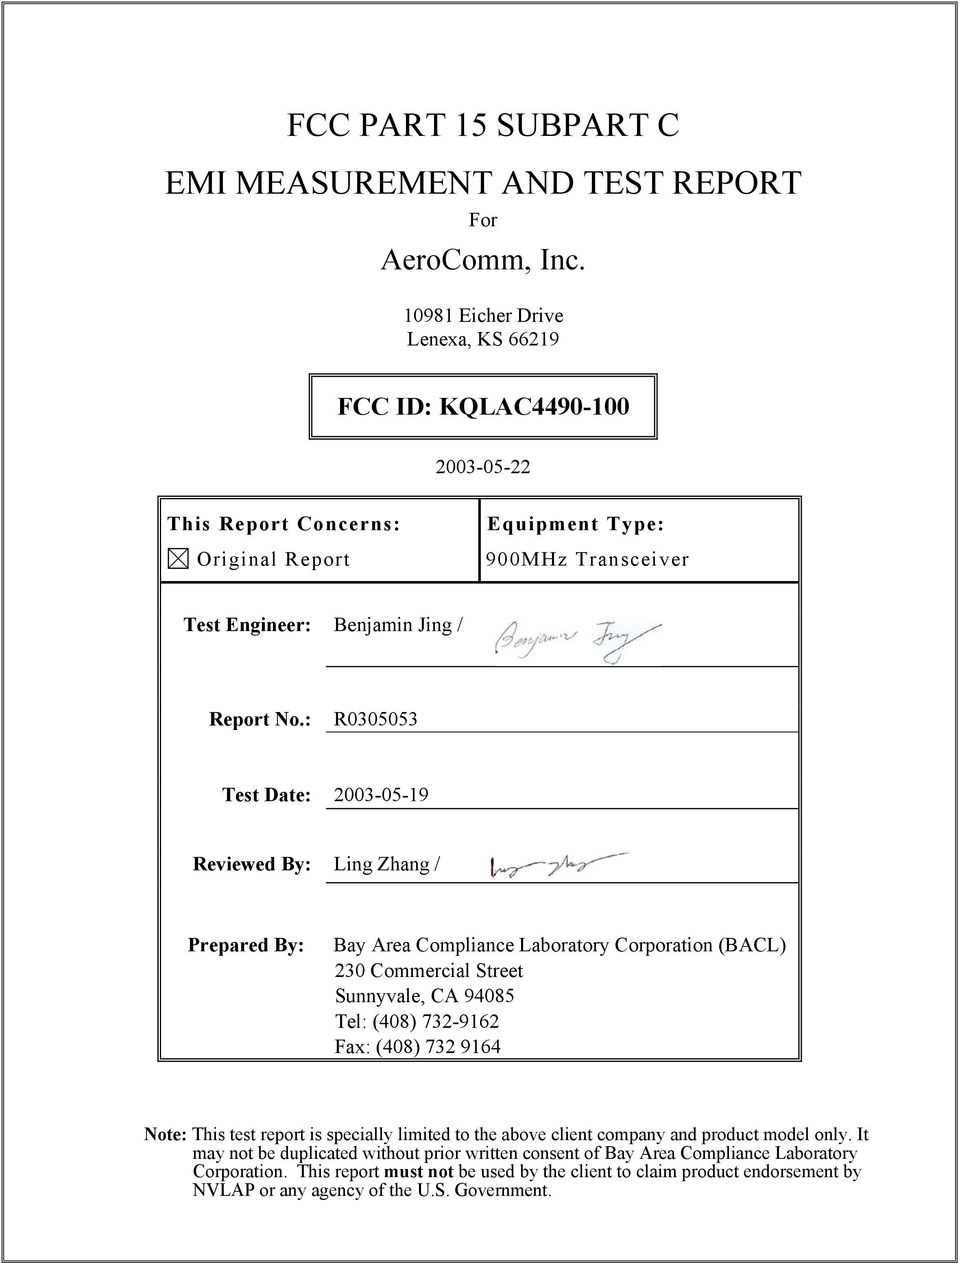 : R0305053 Test Date: 2003-05-19 Reviewed By: Ling Zhang / Prepared By: Bay Area Compliance Laboratory Corporation (BACL) 230 Commercial Street Sunnyvale, CA 94085 Tel: (408) 732-9162 Fax: